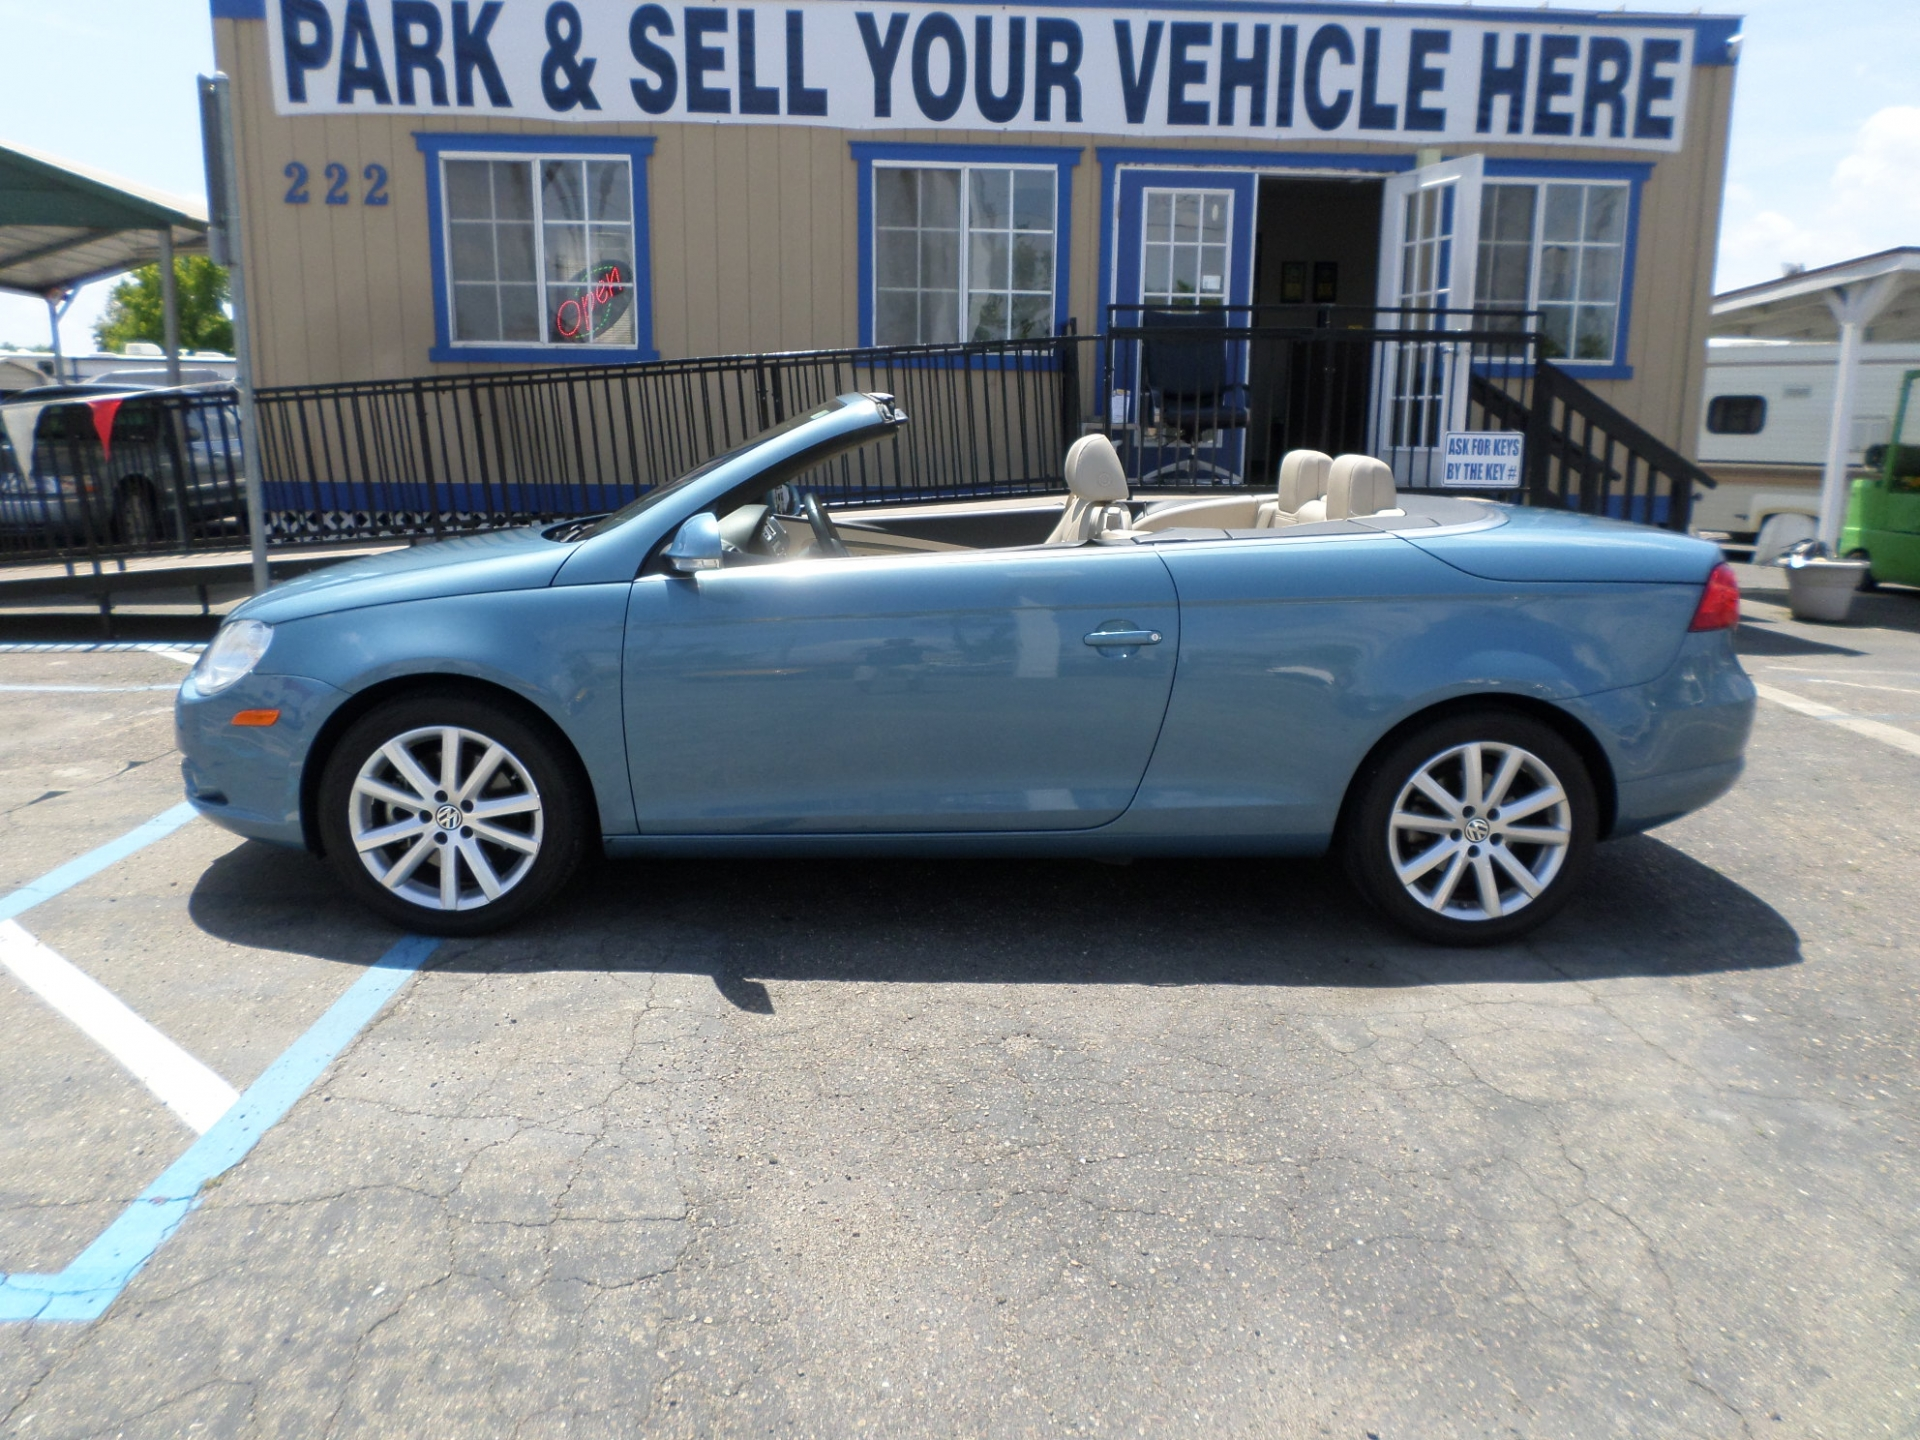 Cars For Sale In Stockton Ca: Car For Sale: 2008 Volkswagen Eos Turbo Convertible In